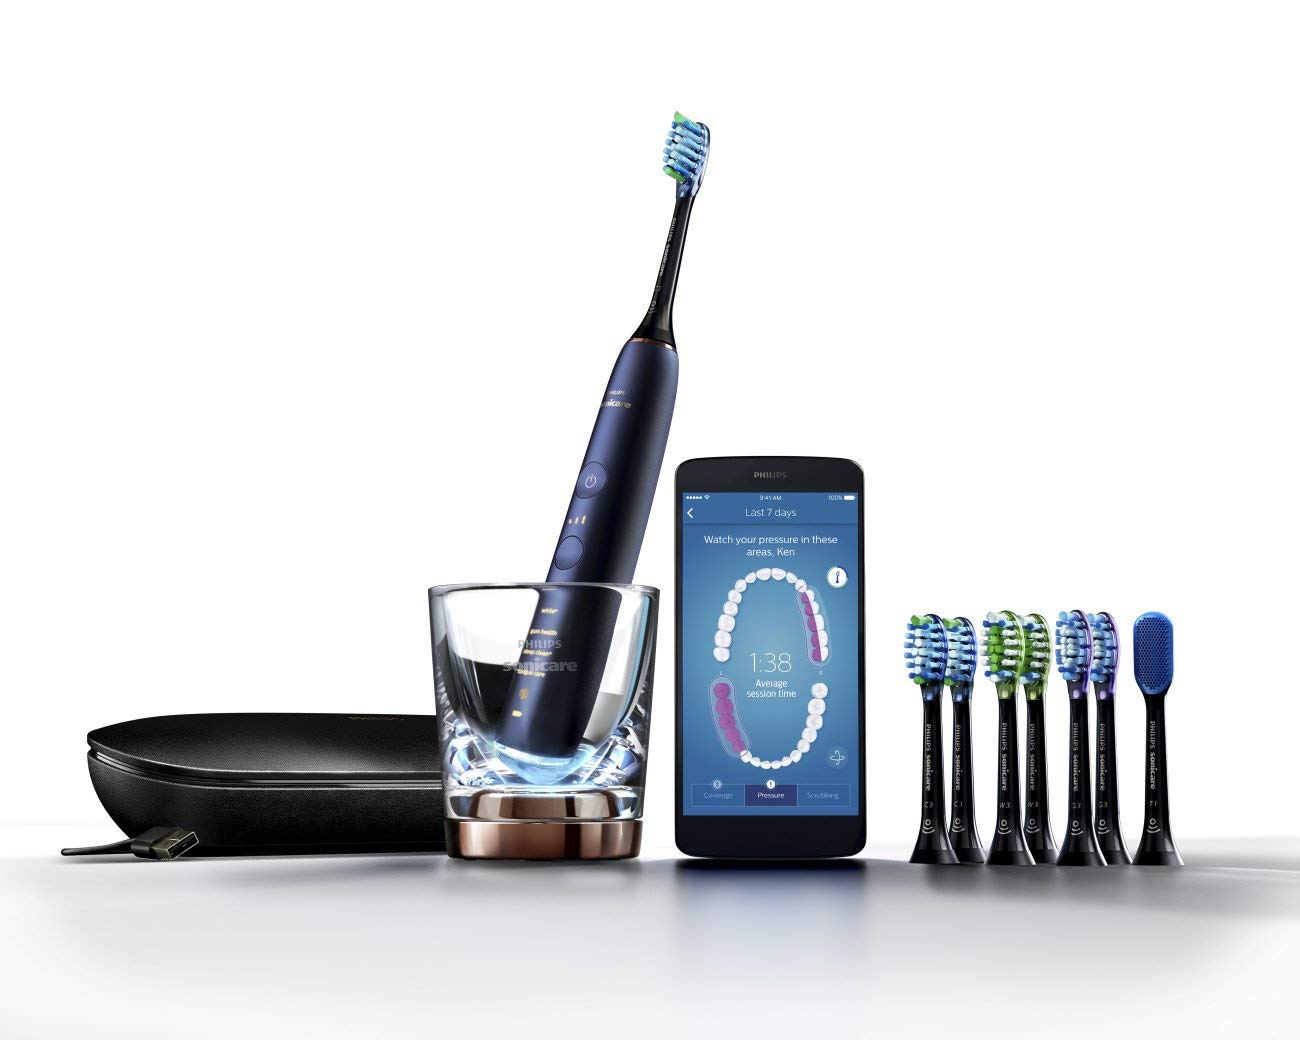 Philips Sonicare DiamondClean Smart 9700 Rechargeable Electric Toothbrush, Lunar Blue HX9957/51 by Philips Sonicare